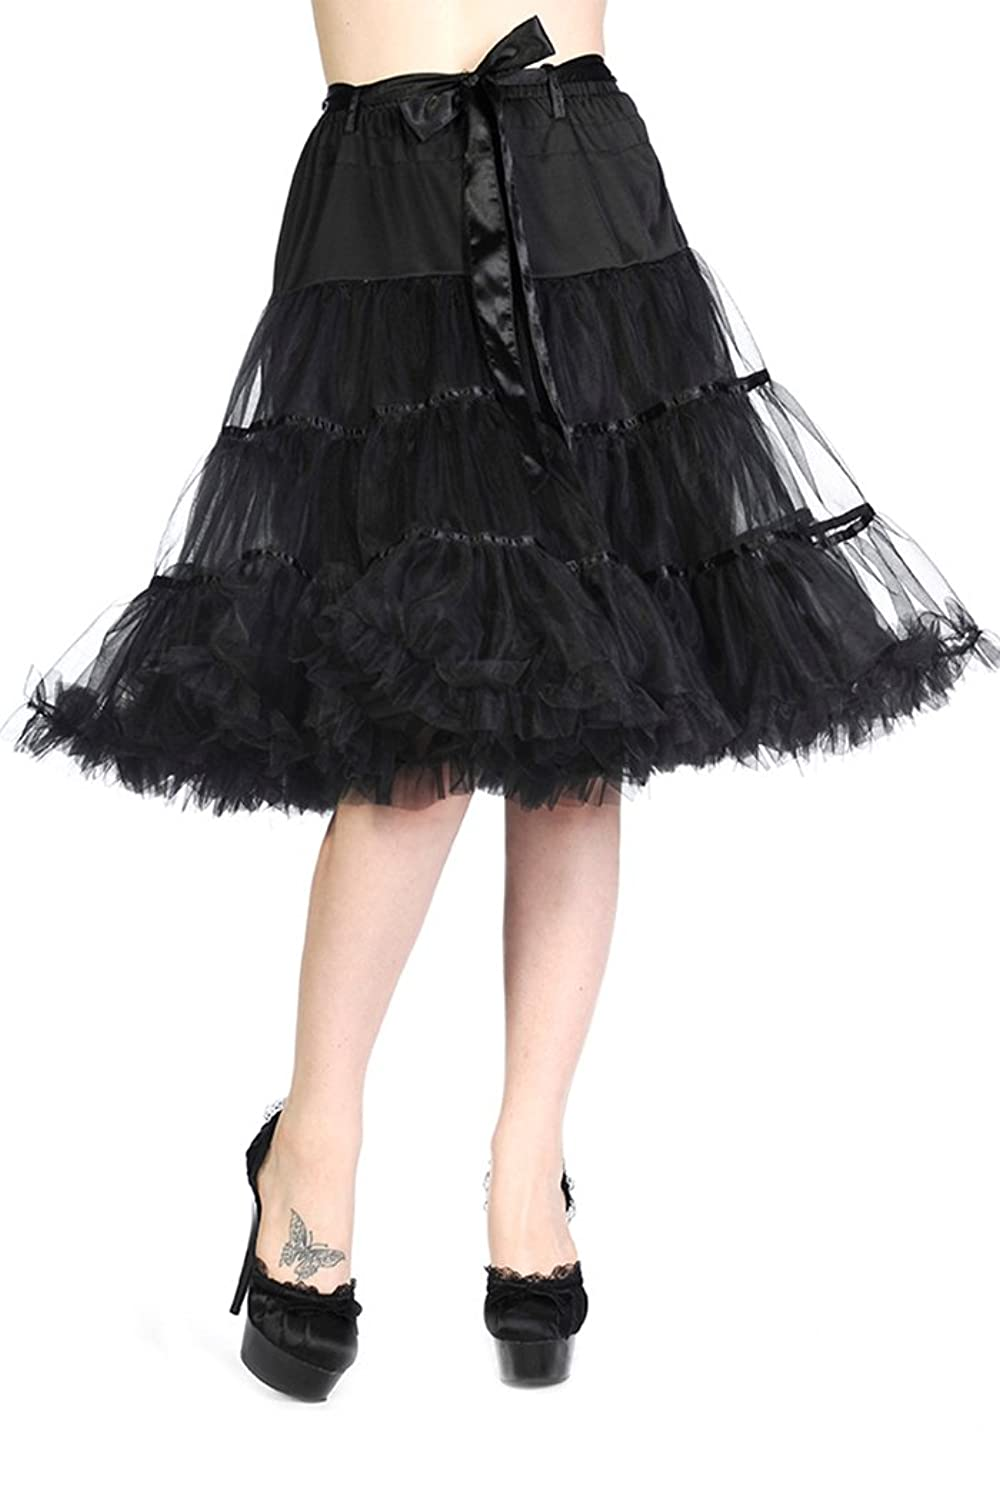 Banned RIBBON Swing Tüll Tulle PETTICOAT Rock Vintage Rockabilly